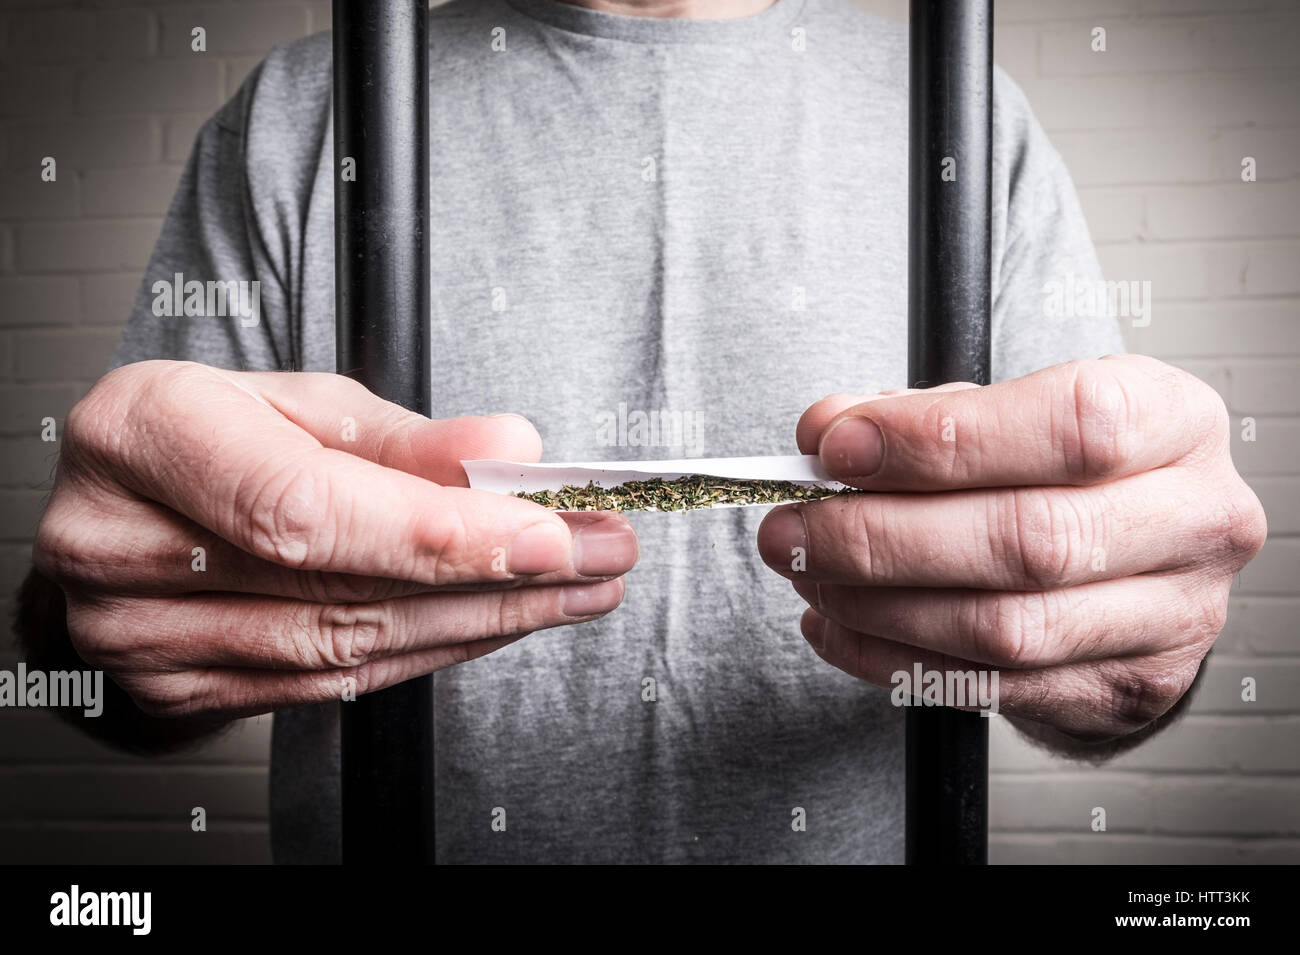 A prisoner behind bars in prison holding drugs or legal highs Spice  (photo posed by model to illustrate the issue - Stock Image